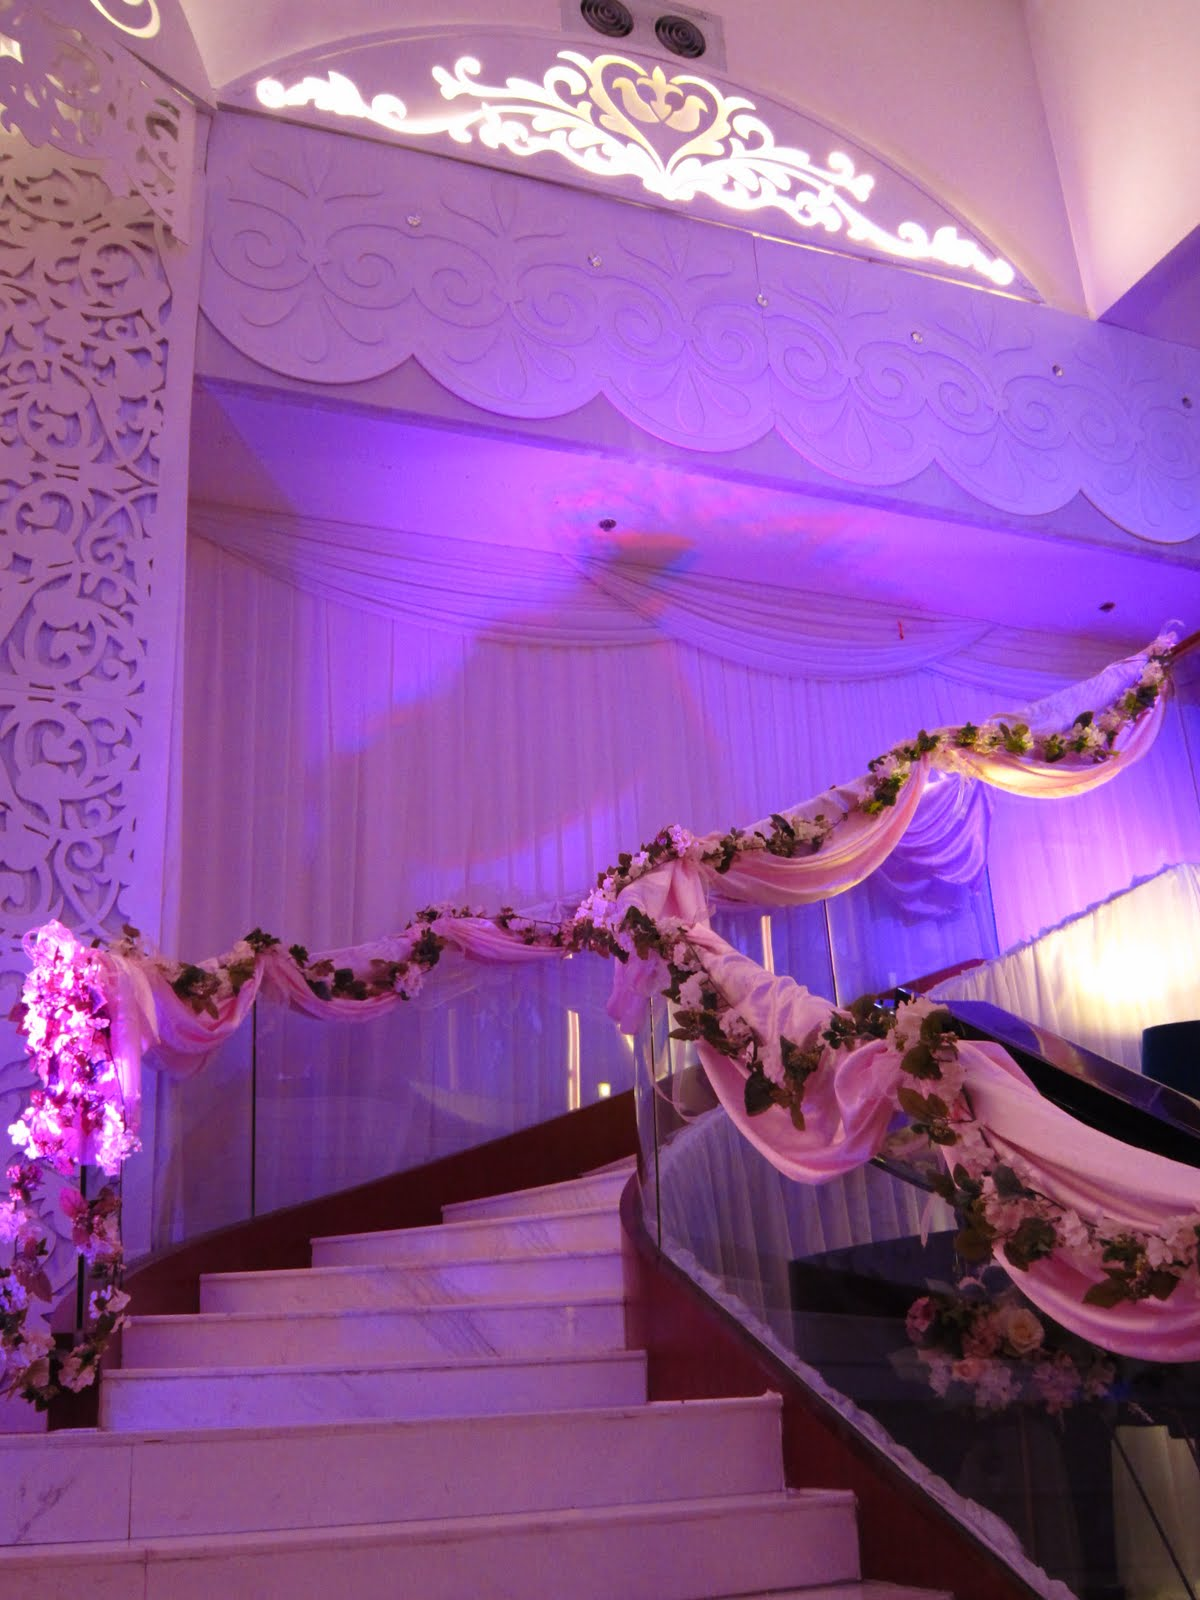 Decorate my wedding romantic decoration wishahmon wedding creations november 2011 junglespirit